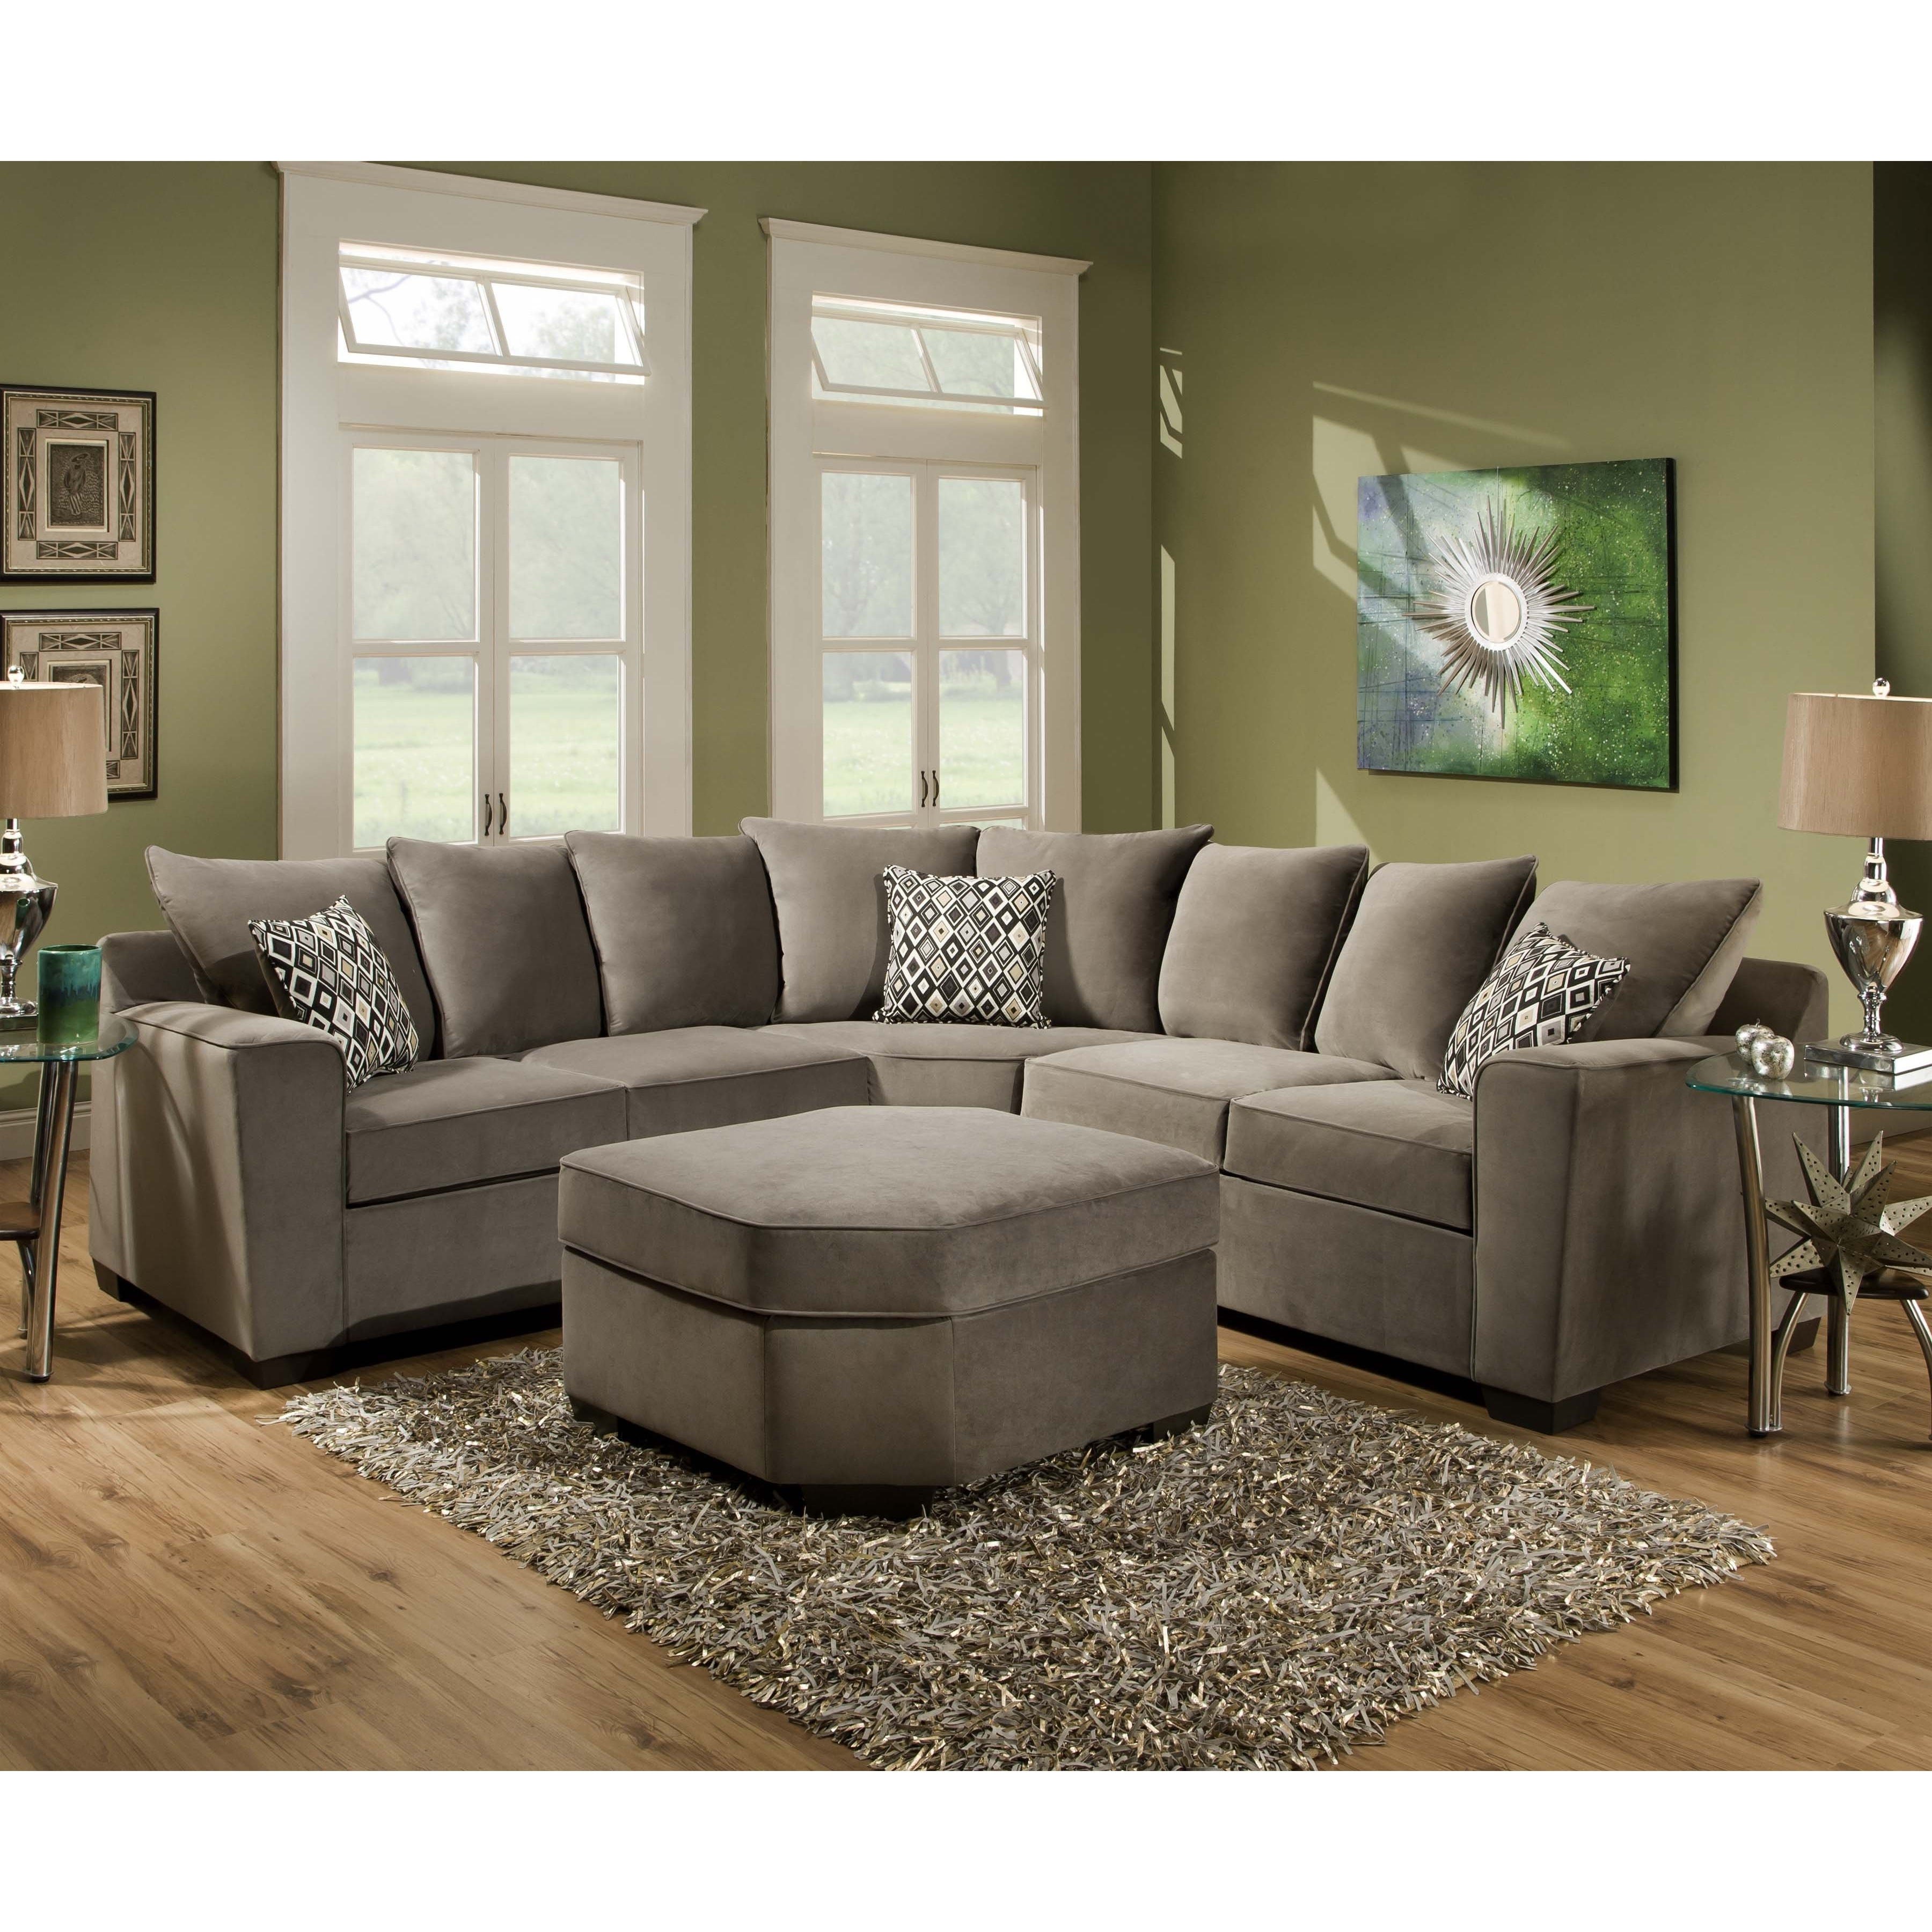 Sears Sectional Sofas Inside Current Furniture & Rug: Cheap Sectional Couches For Home Furniture Idea (View 10 of 20)